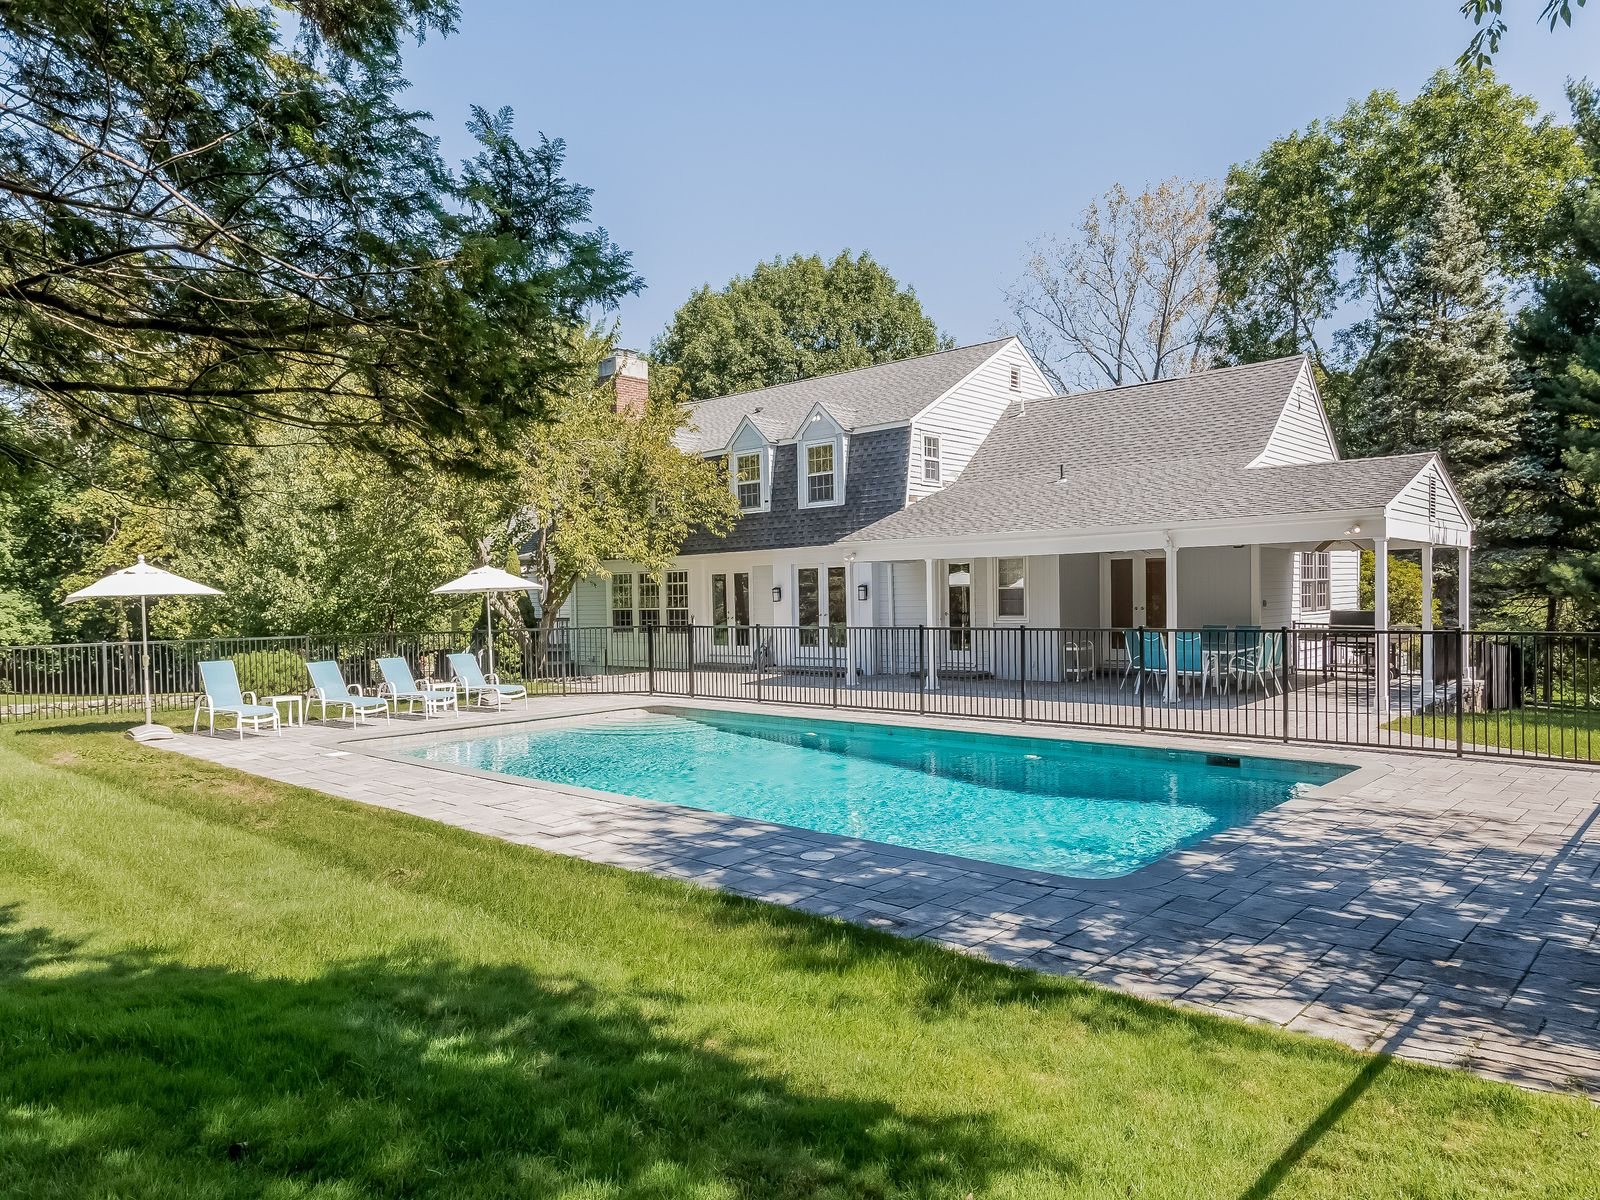 Mid-Country Beauty, Greenwich CT Single Family Home - Greenwich Real Estate